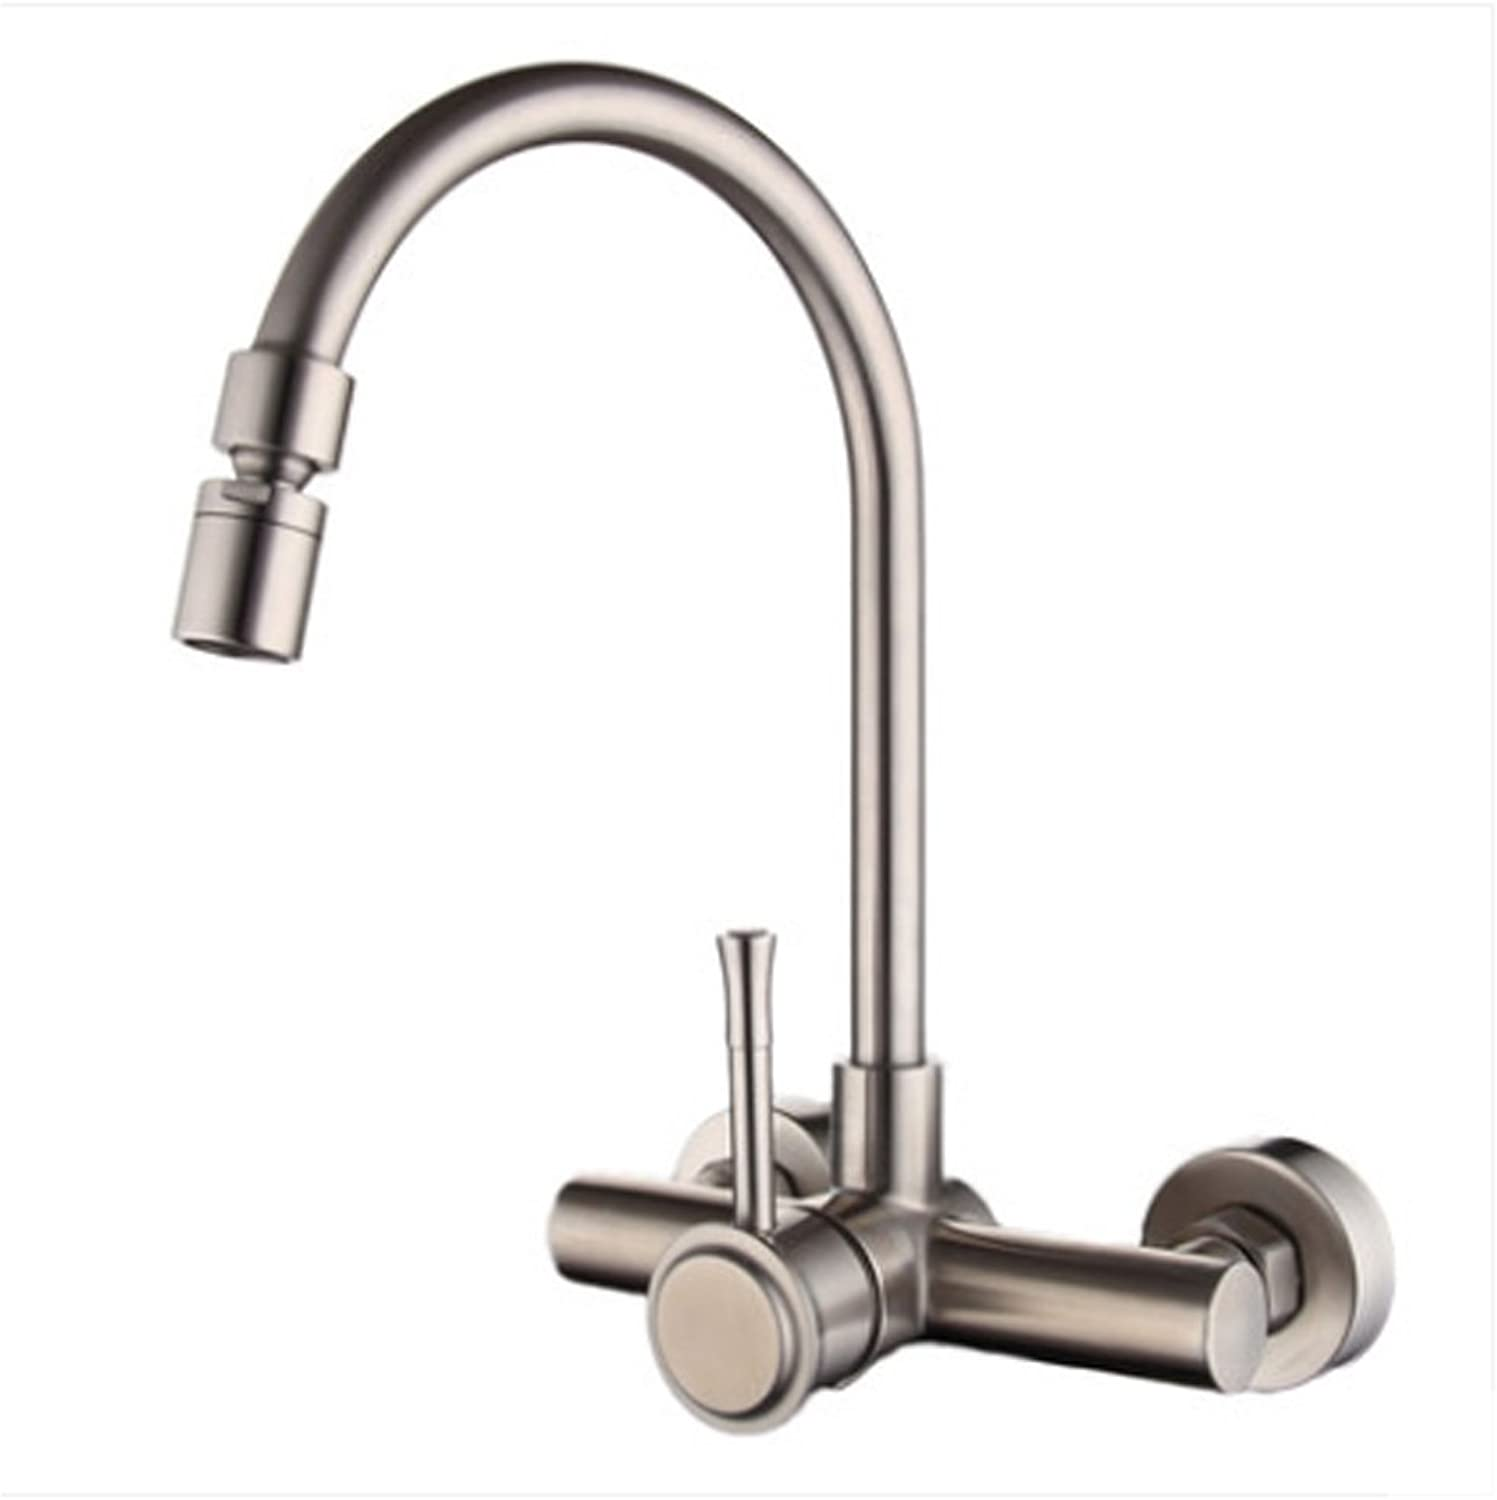 Double-hole Faucet 304 Stainless Steel Hot And Cold redating Into The Wall Kitchen Sink Dishwashing Mixing Valve Aperture Is 35MM To 40MM Can Be Installed MUMUJIN